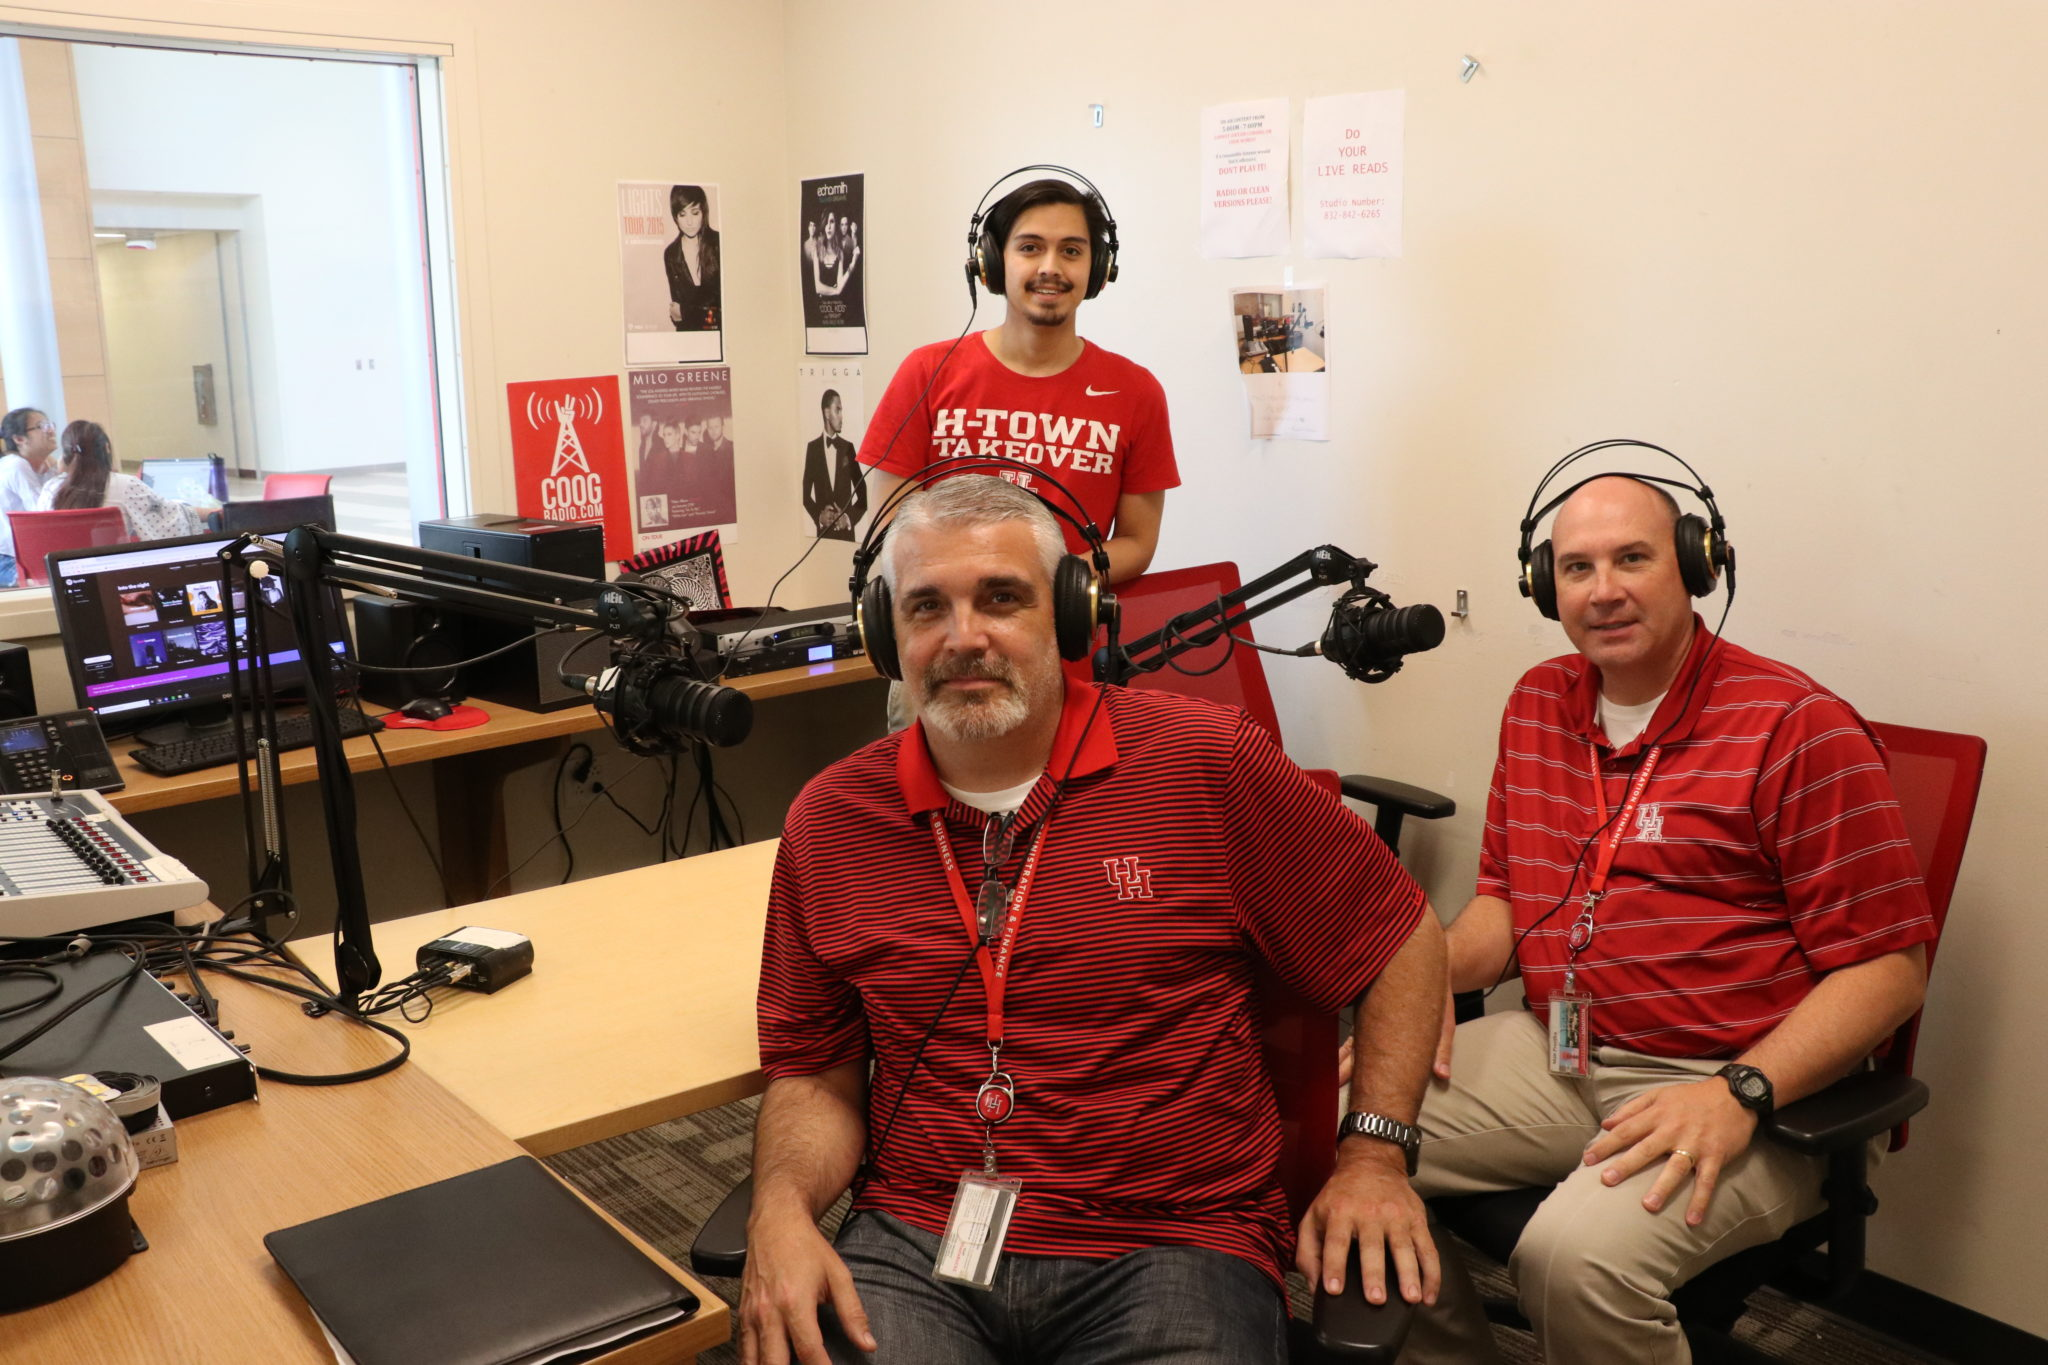 Coog Radio Interviews: Neil Hart and Matt Prasifka, Executive Directors of UH Parking and Auxiliary Services